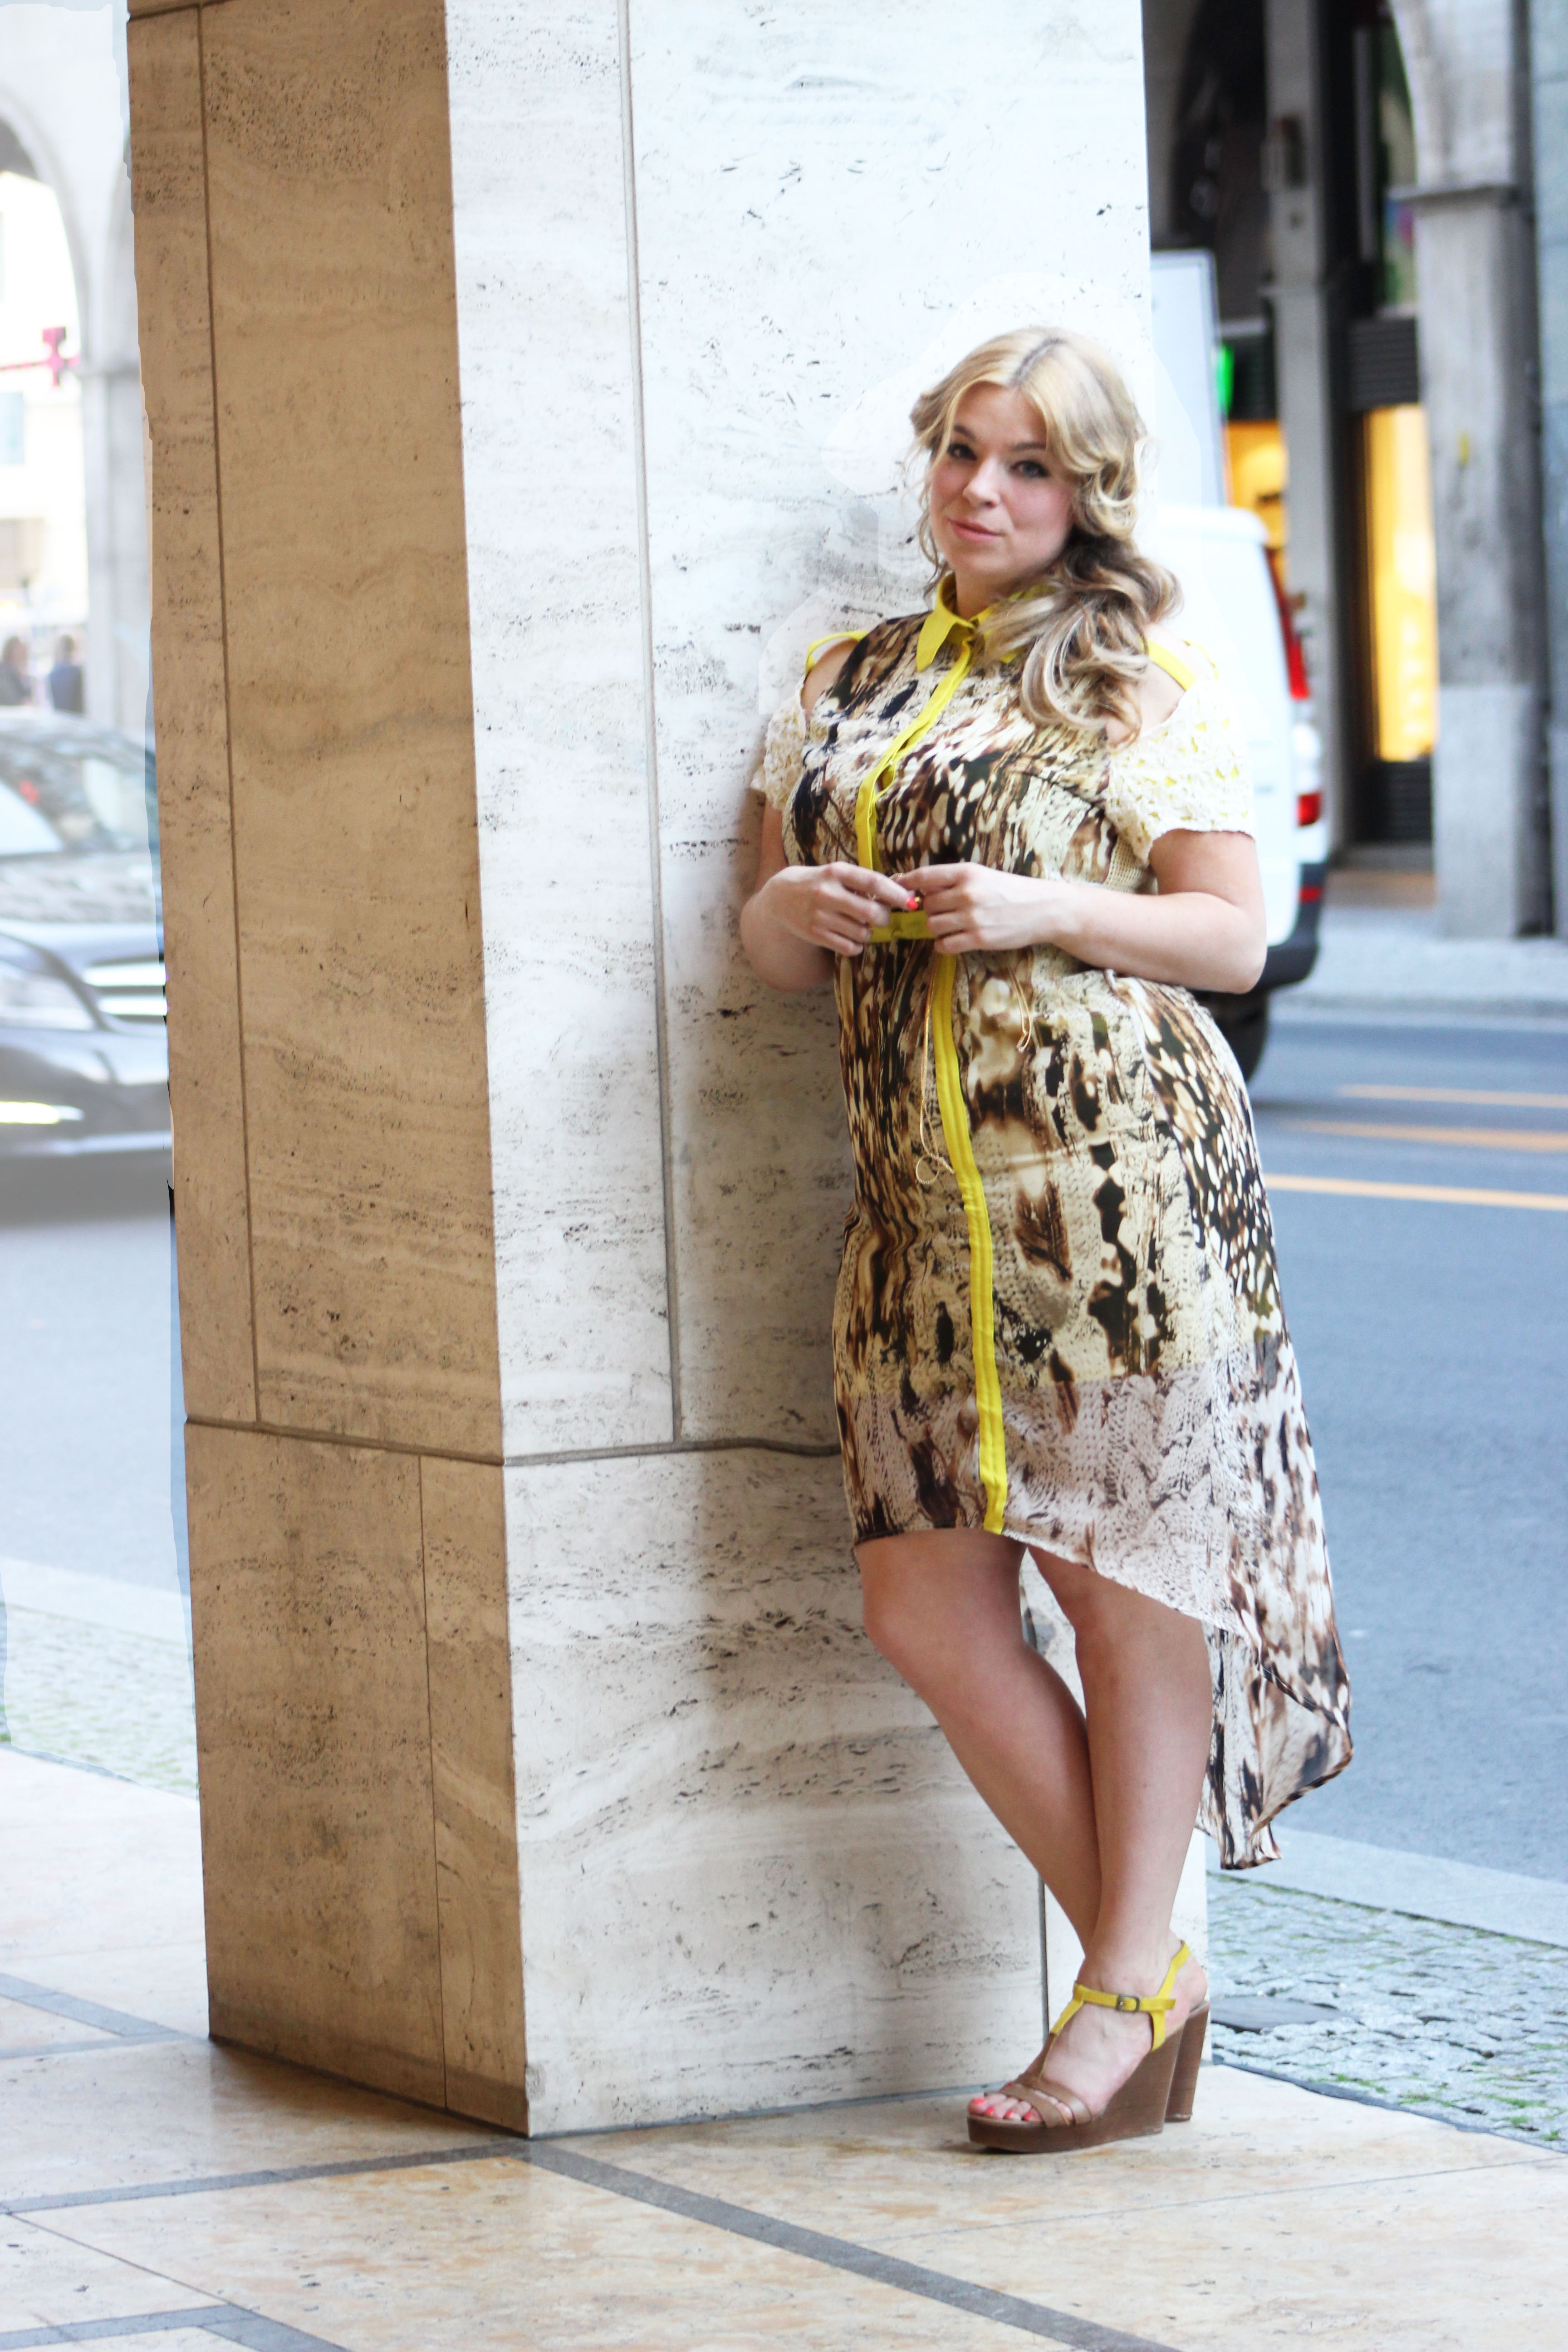 caterina-pogorzelski-blog-Berlin-Deutschland-Model-Mode-Plussize-Curvy-megabambi